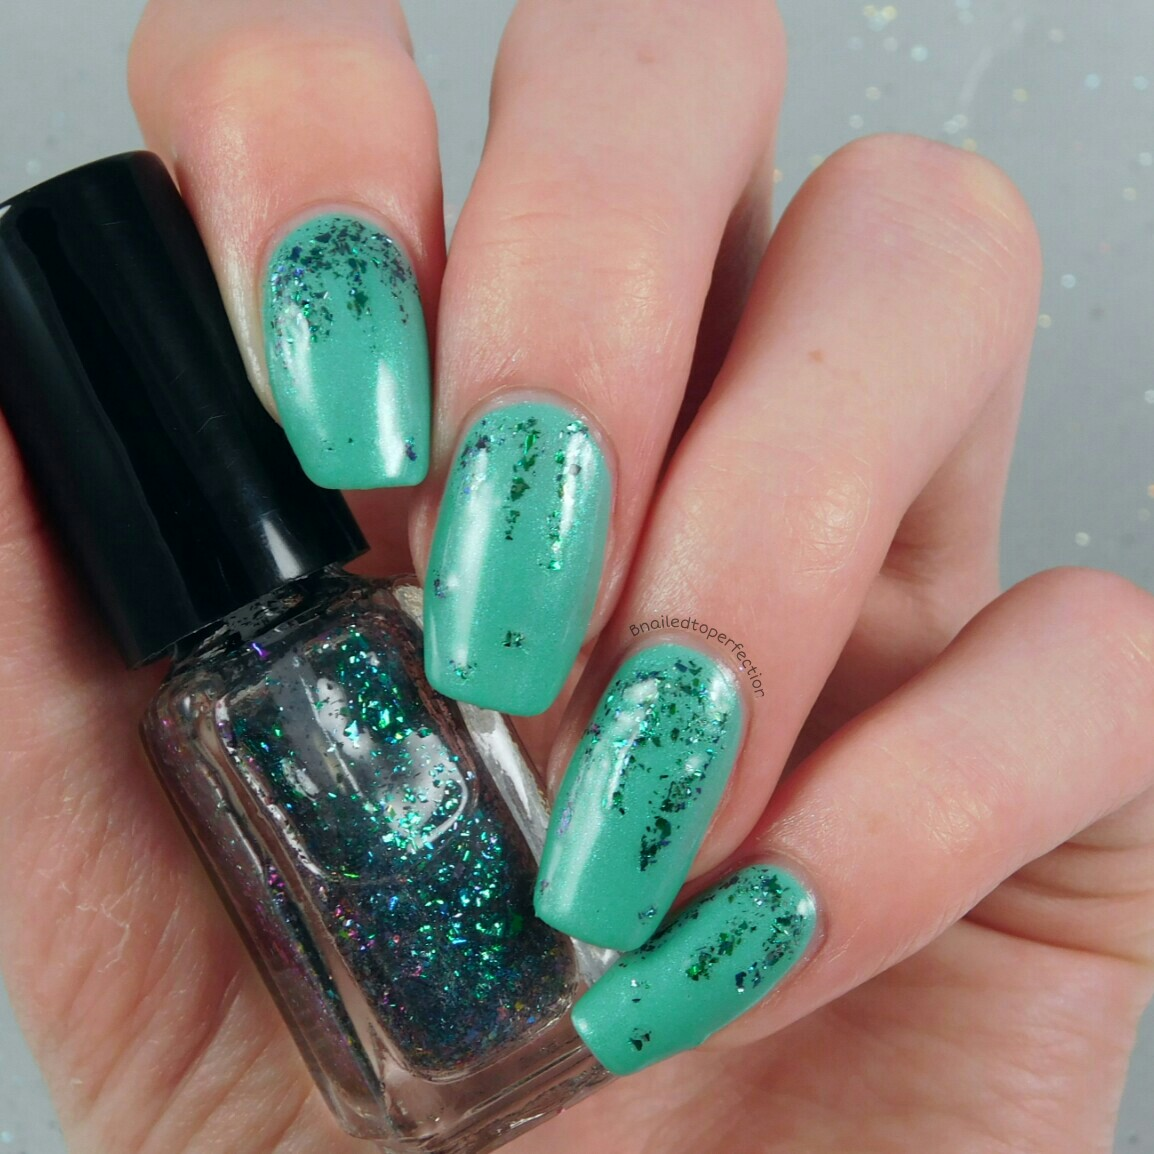 B Nailed To Perfection: 40 Great Nail Art Ideas: Mint and dotting tools